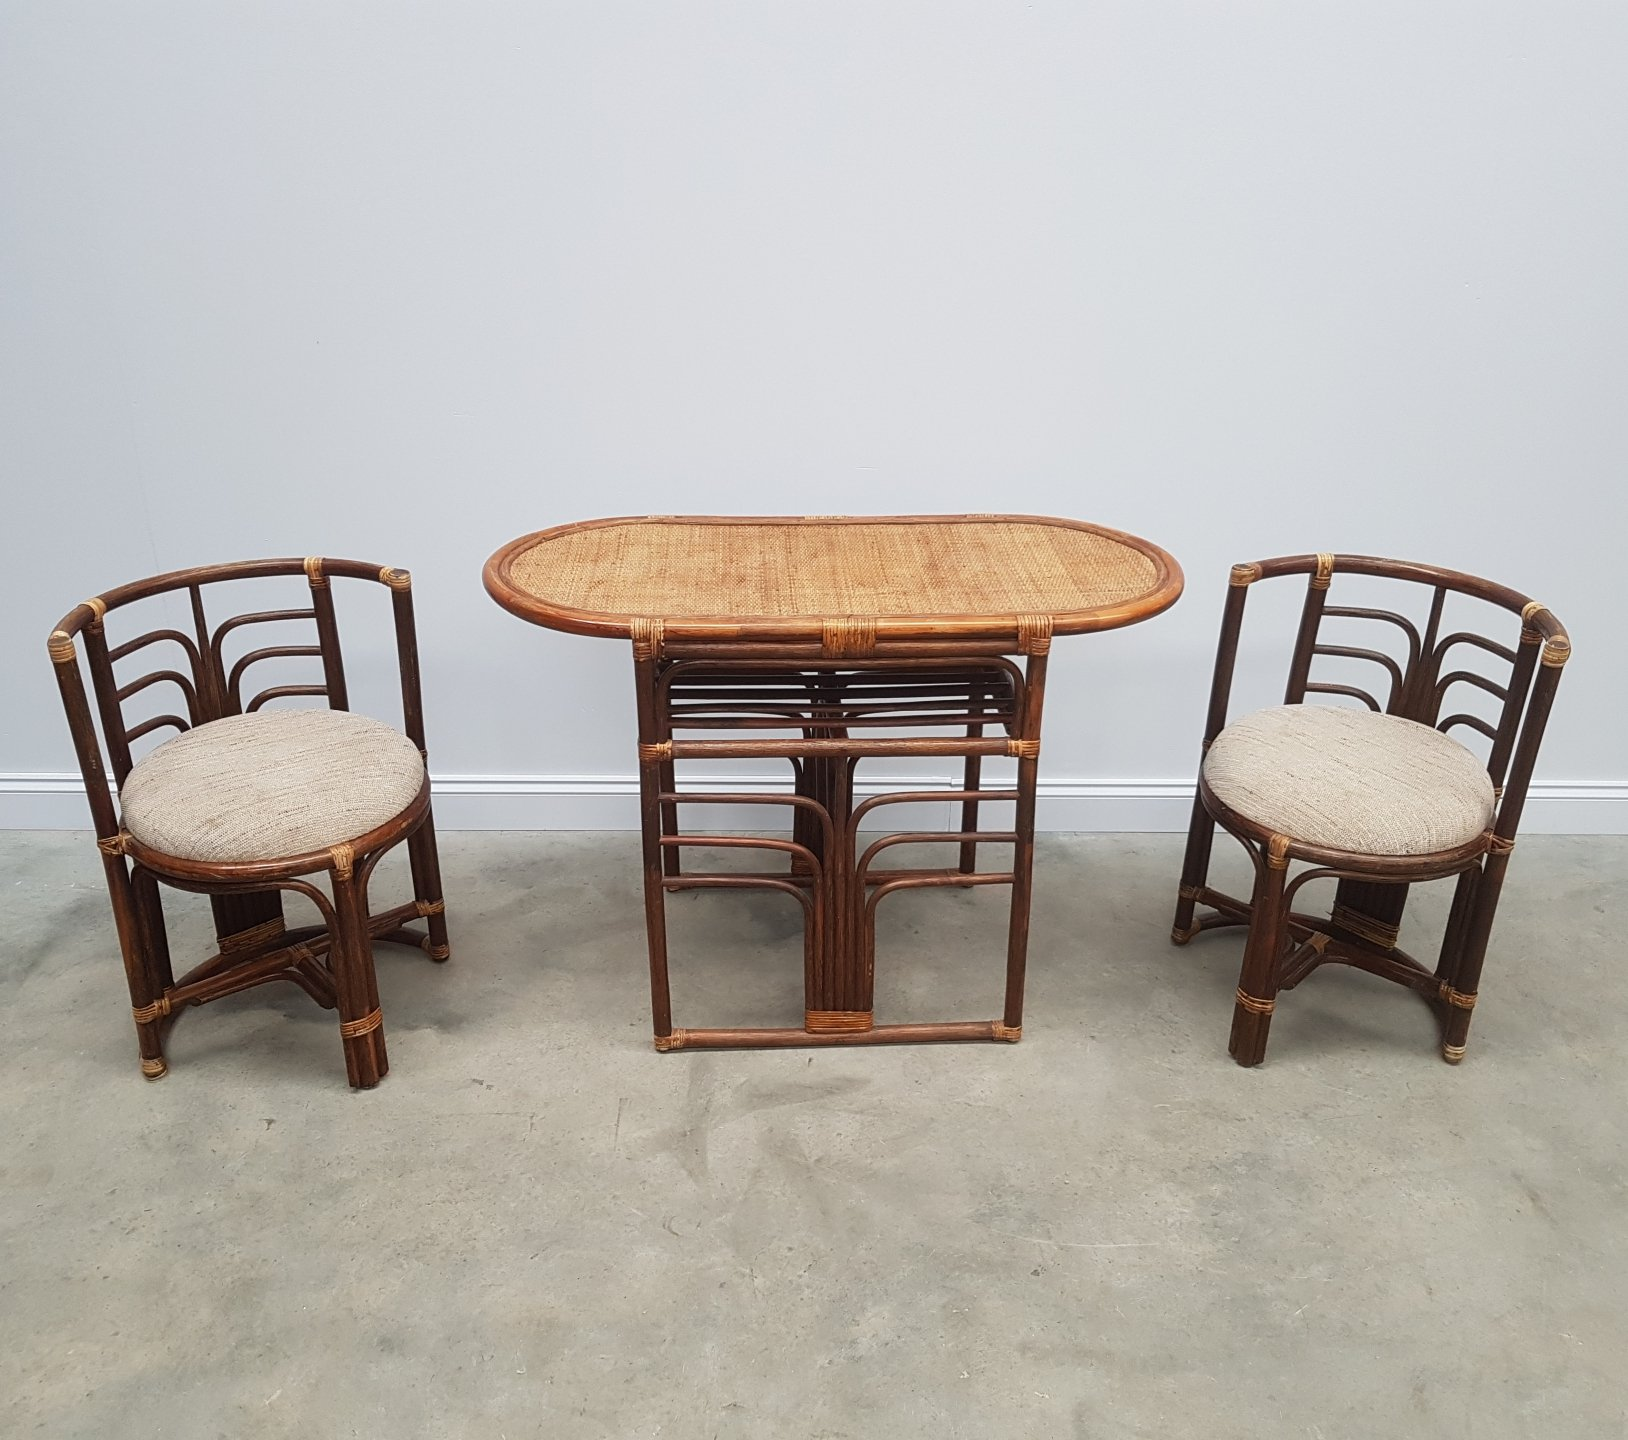 Vintage Rattan Set Of Table Chairs